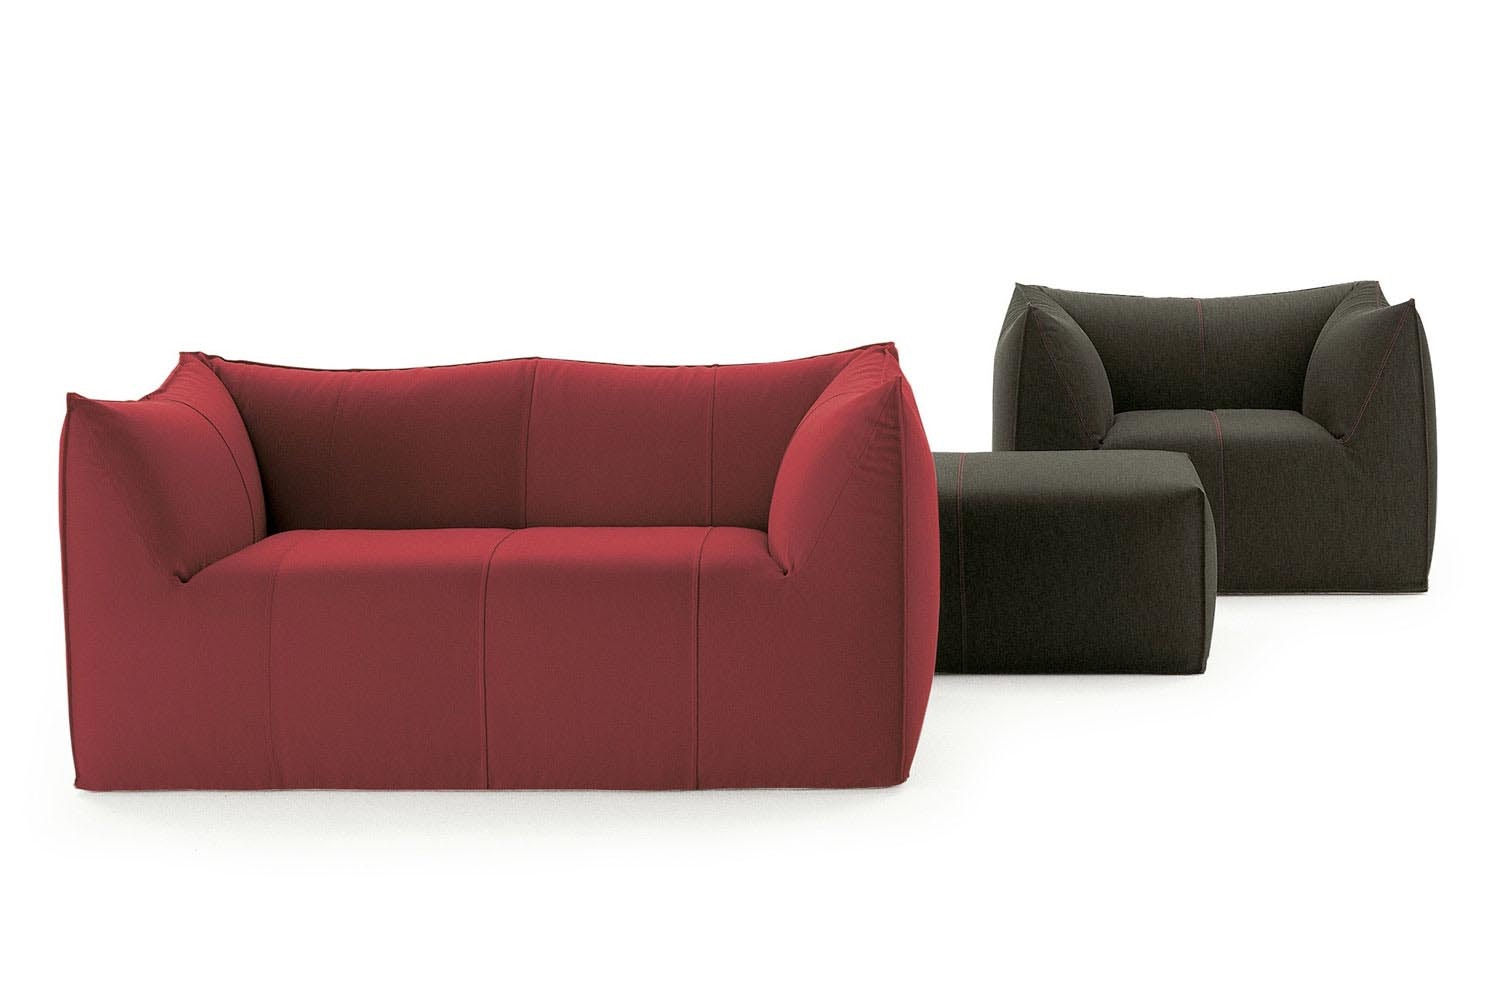 Le Bambole '07 Sofa by Mario Bellini for B&B Italia